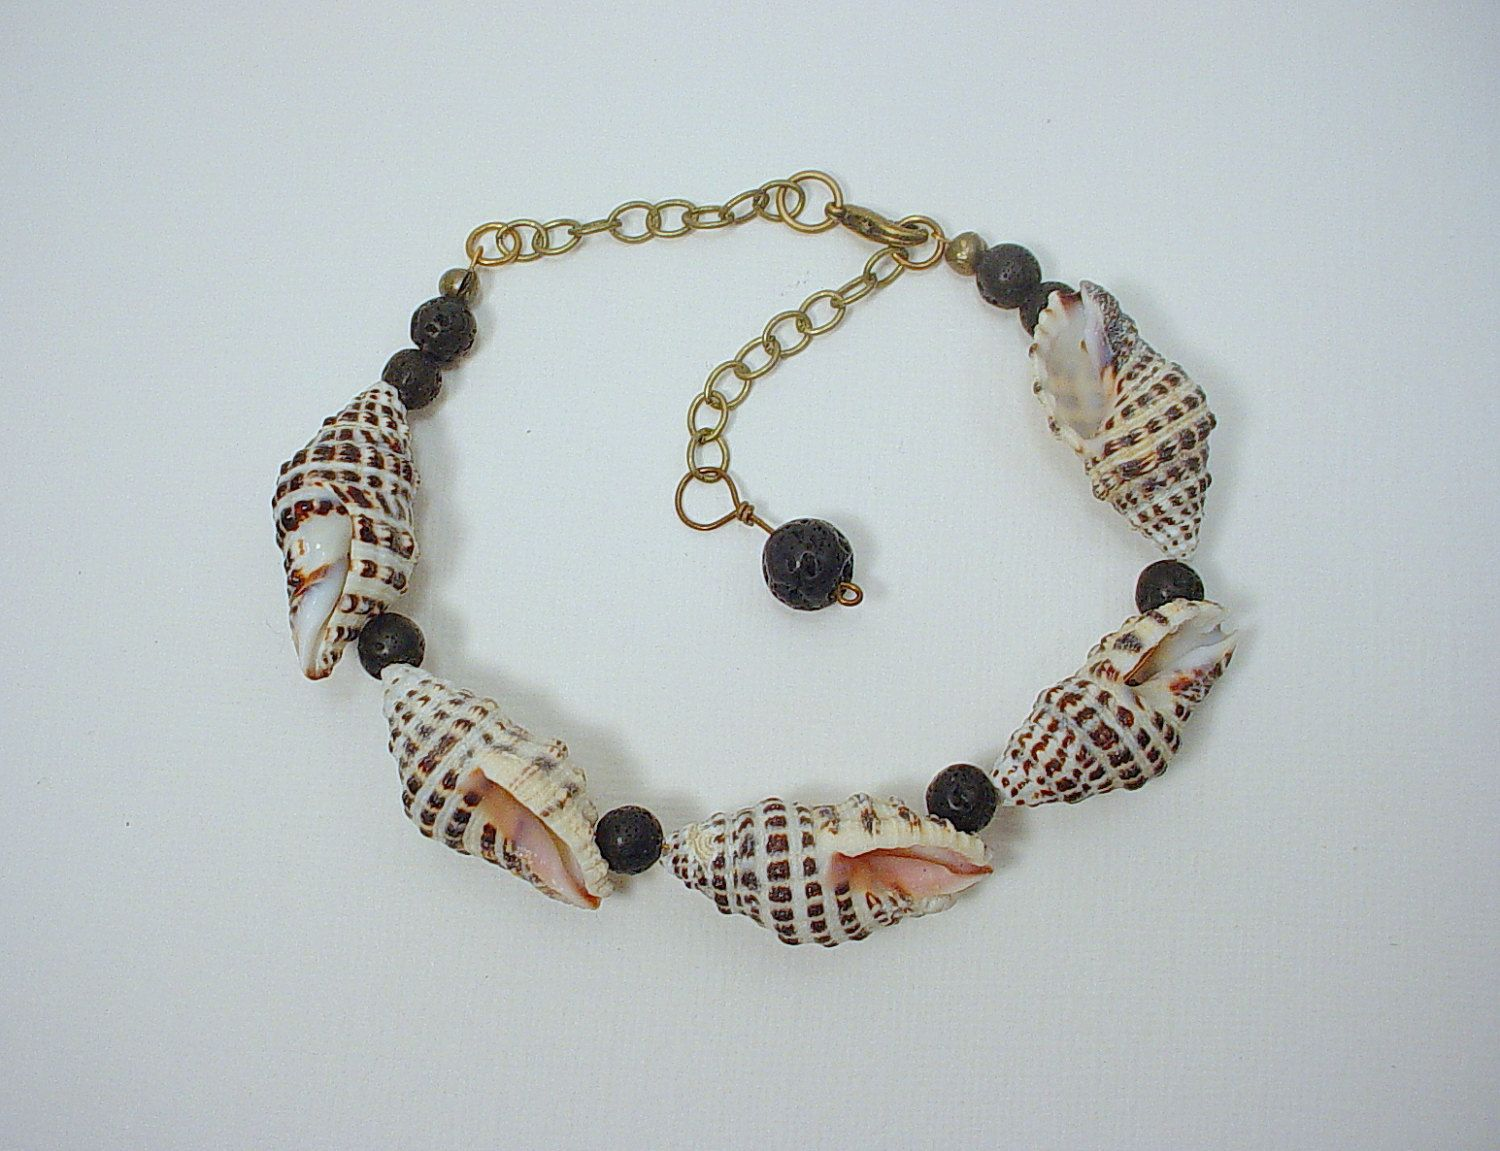 237e13a4fe986 Surfer Dude Bracelet with Black Lava Rock and Small Conch Shells ...